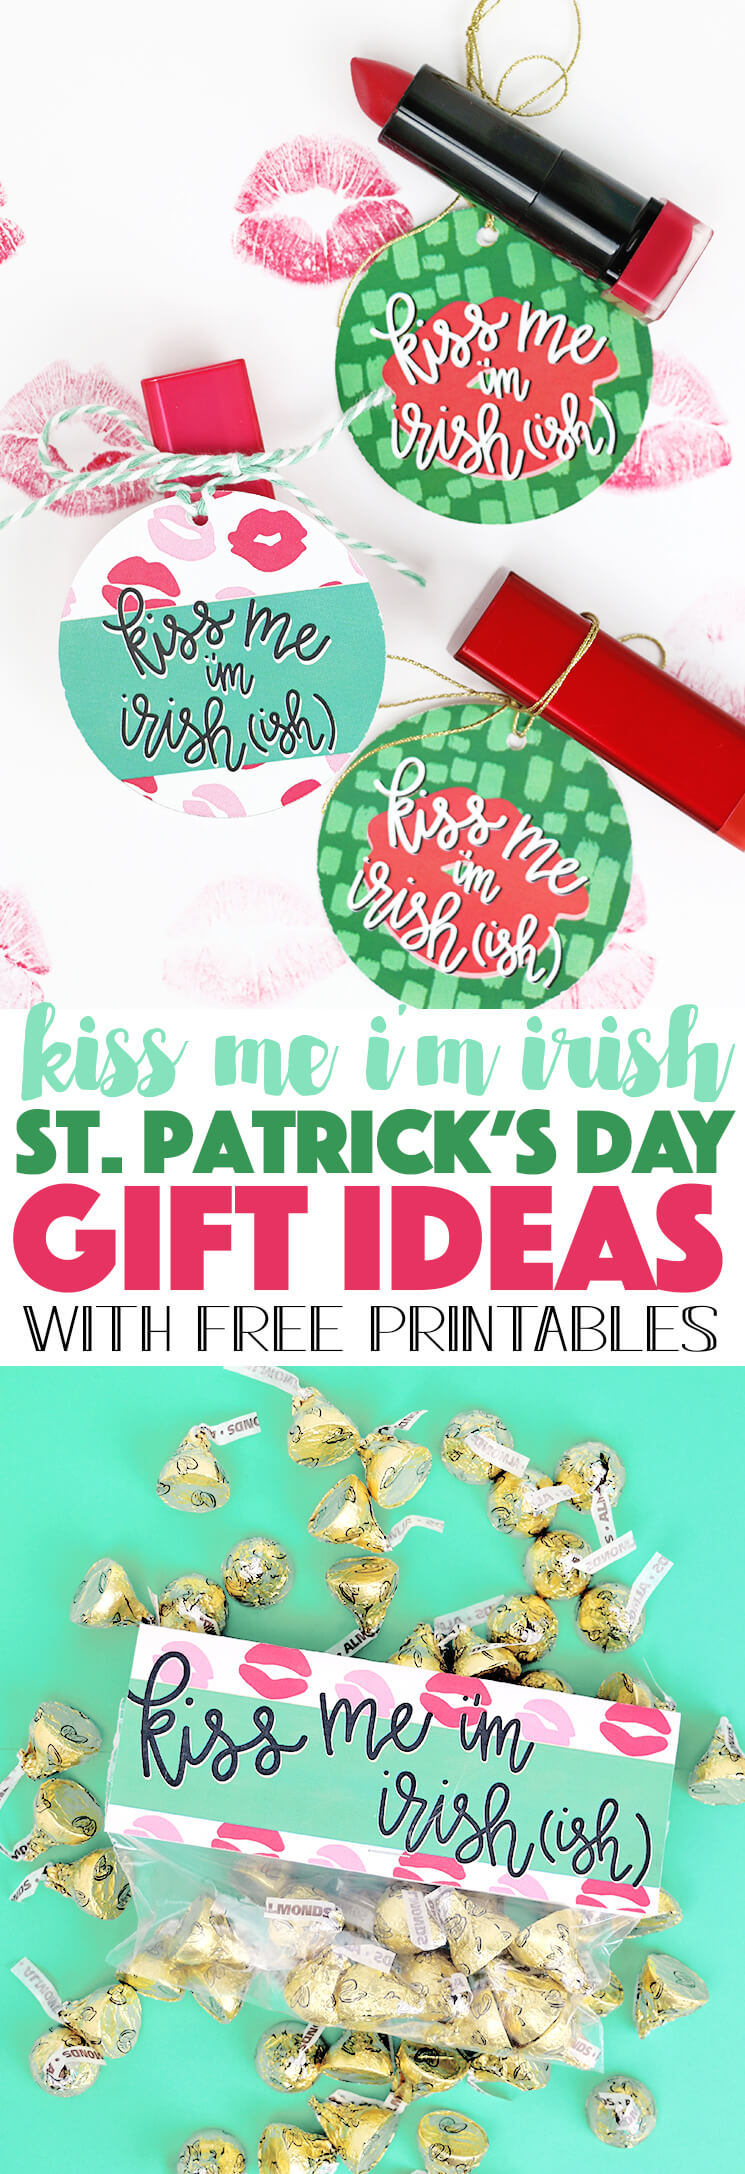 Kiss Me I'm Irish(ish) St. Patrick's Day Gift Idea with printables